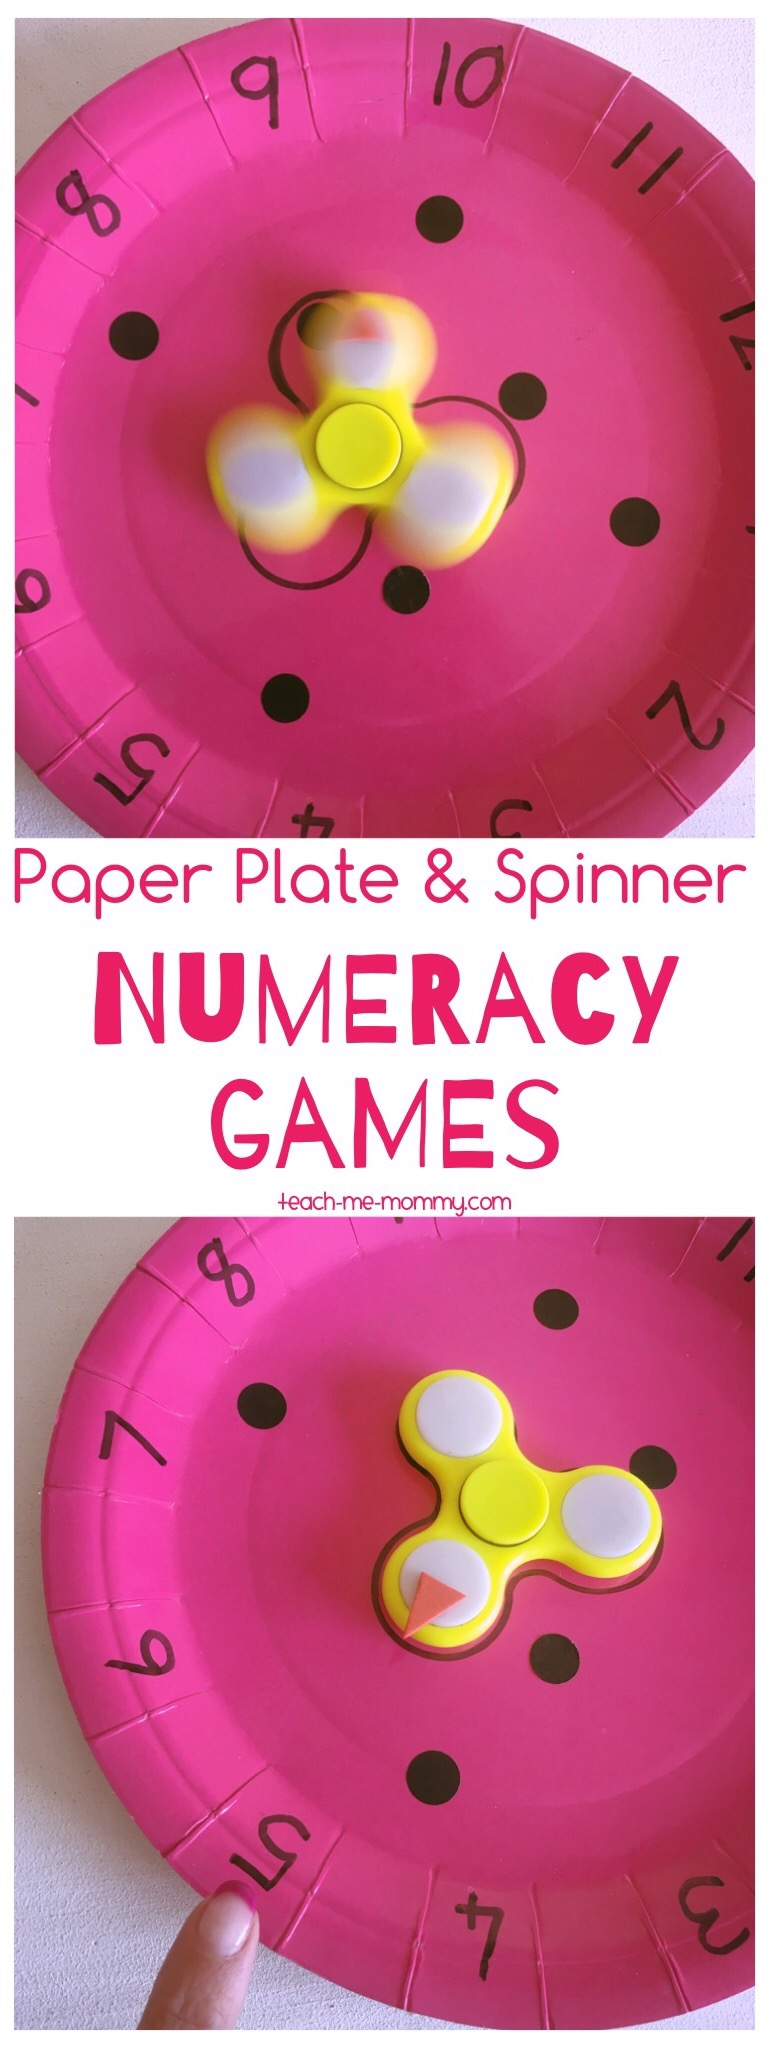 Plate & spinner numeracy games